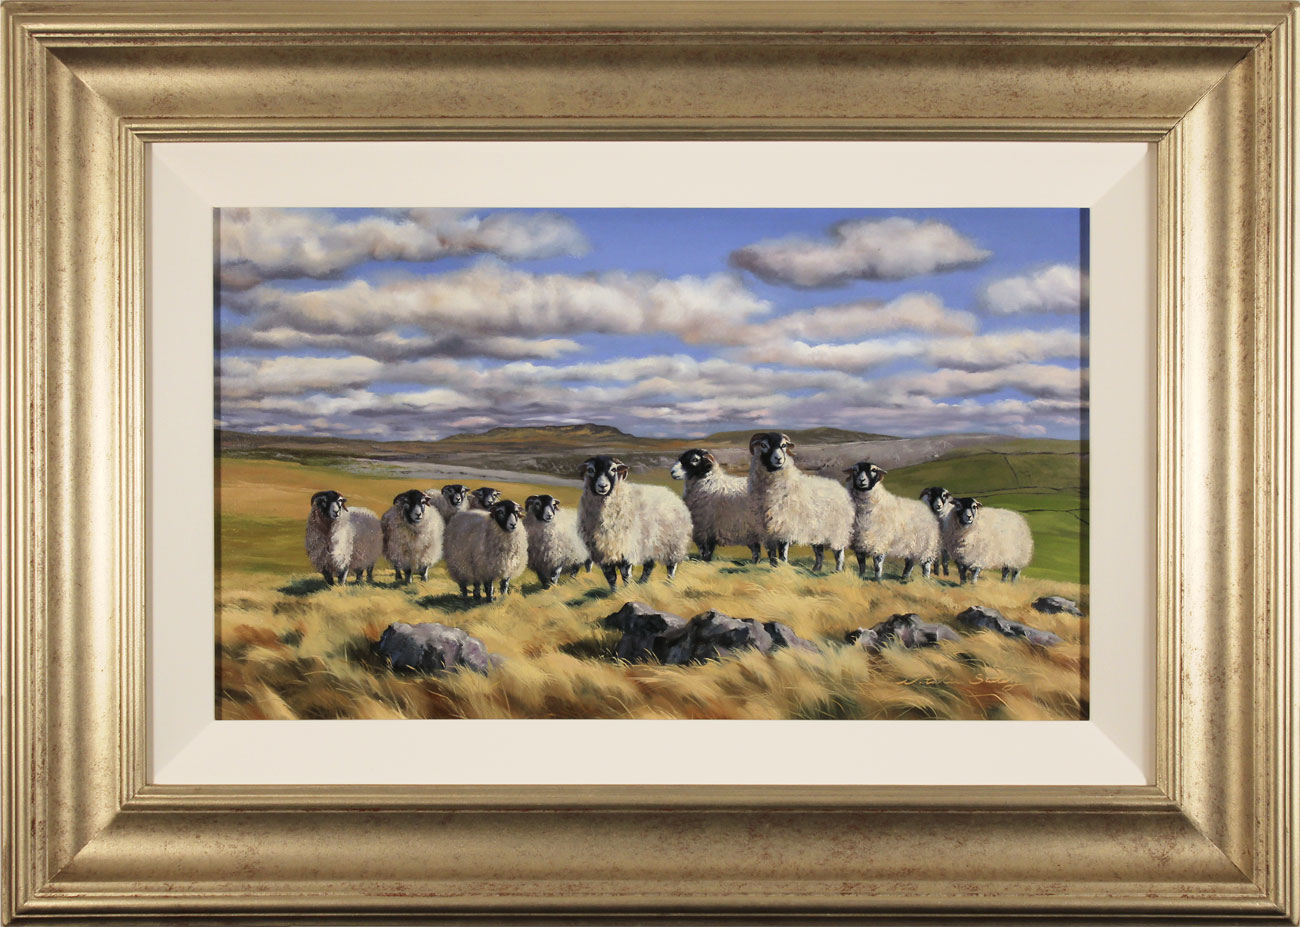 Natalie Stutely, Original oil painting on panel, Flock to Penyghent, click to enlarge